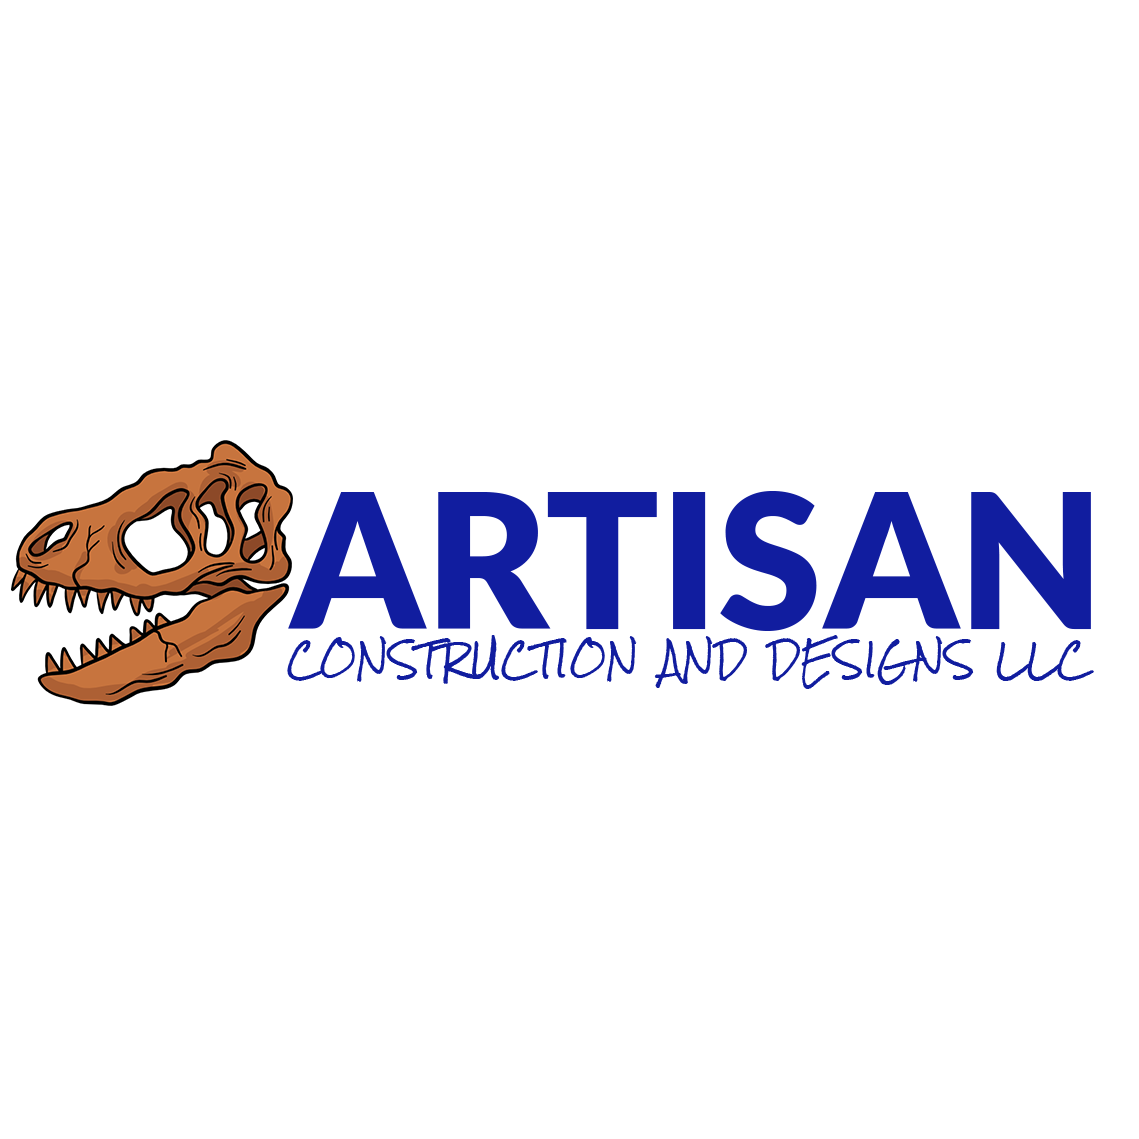 Artisan Construction And Designs LLC